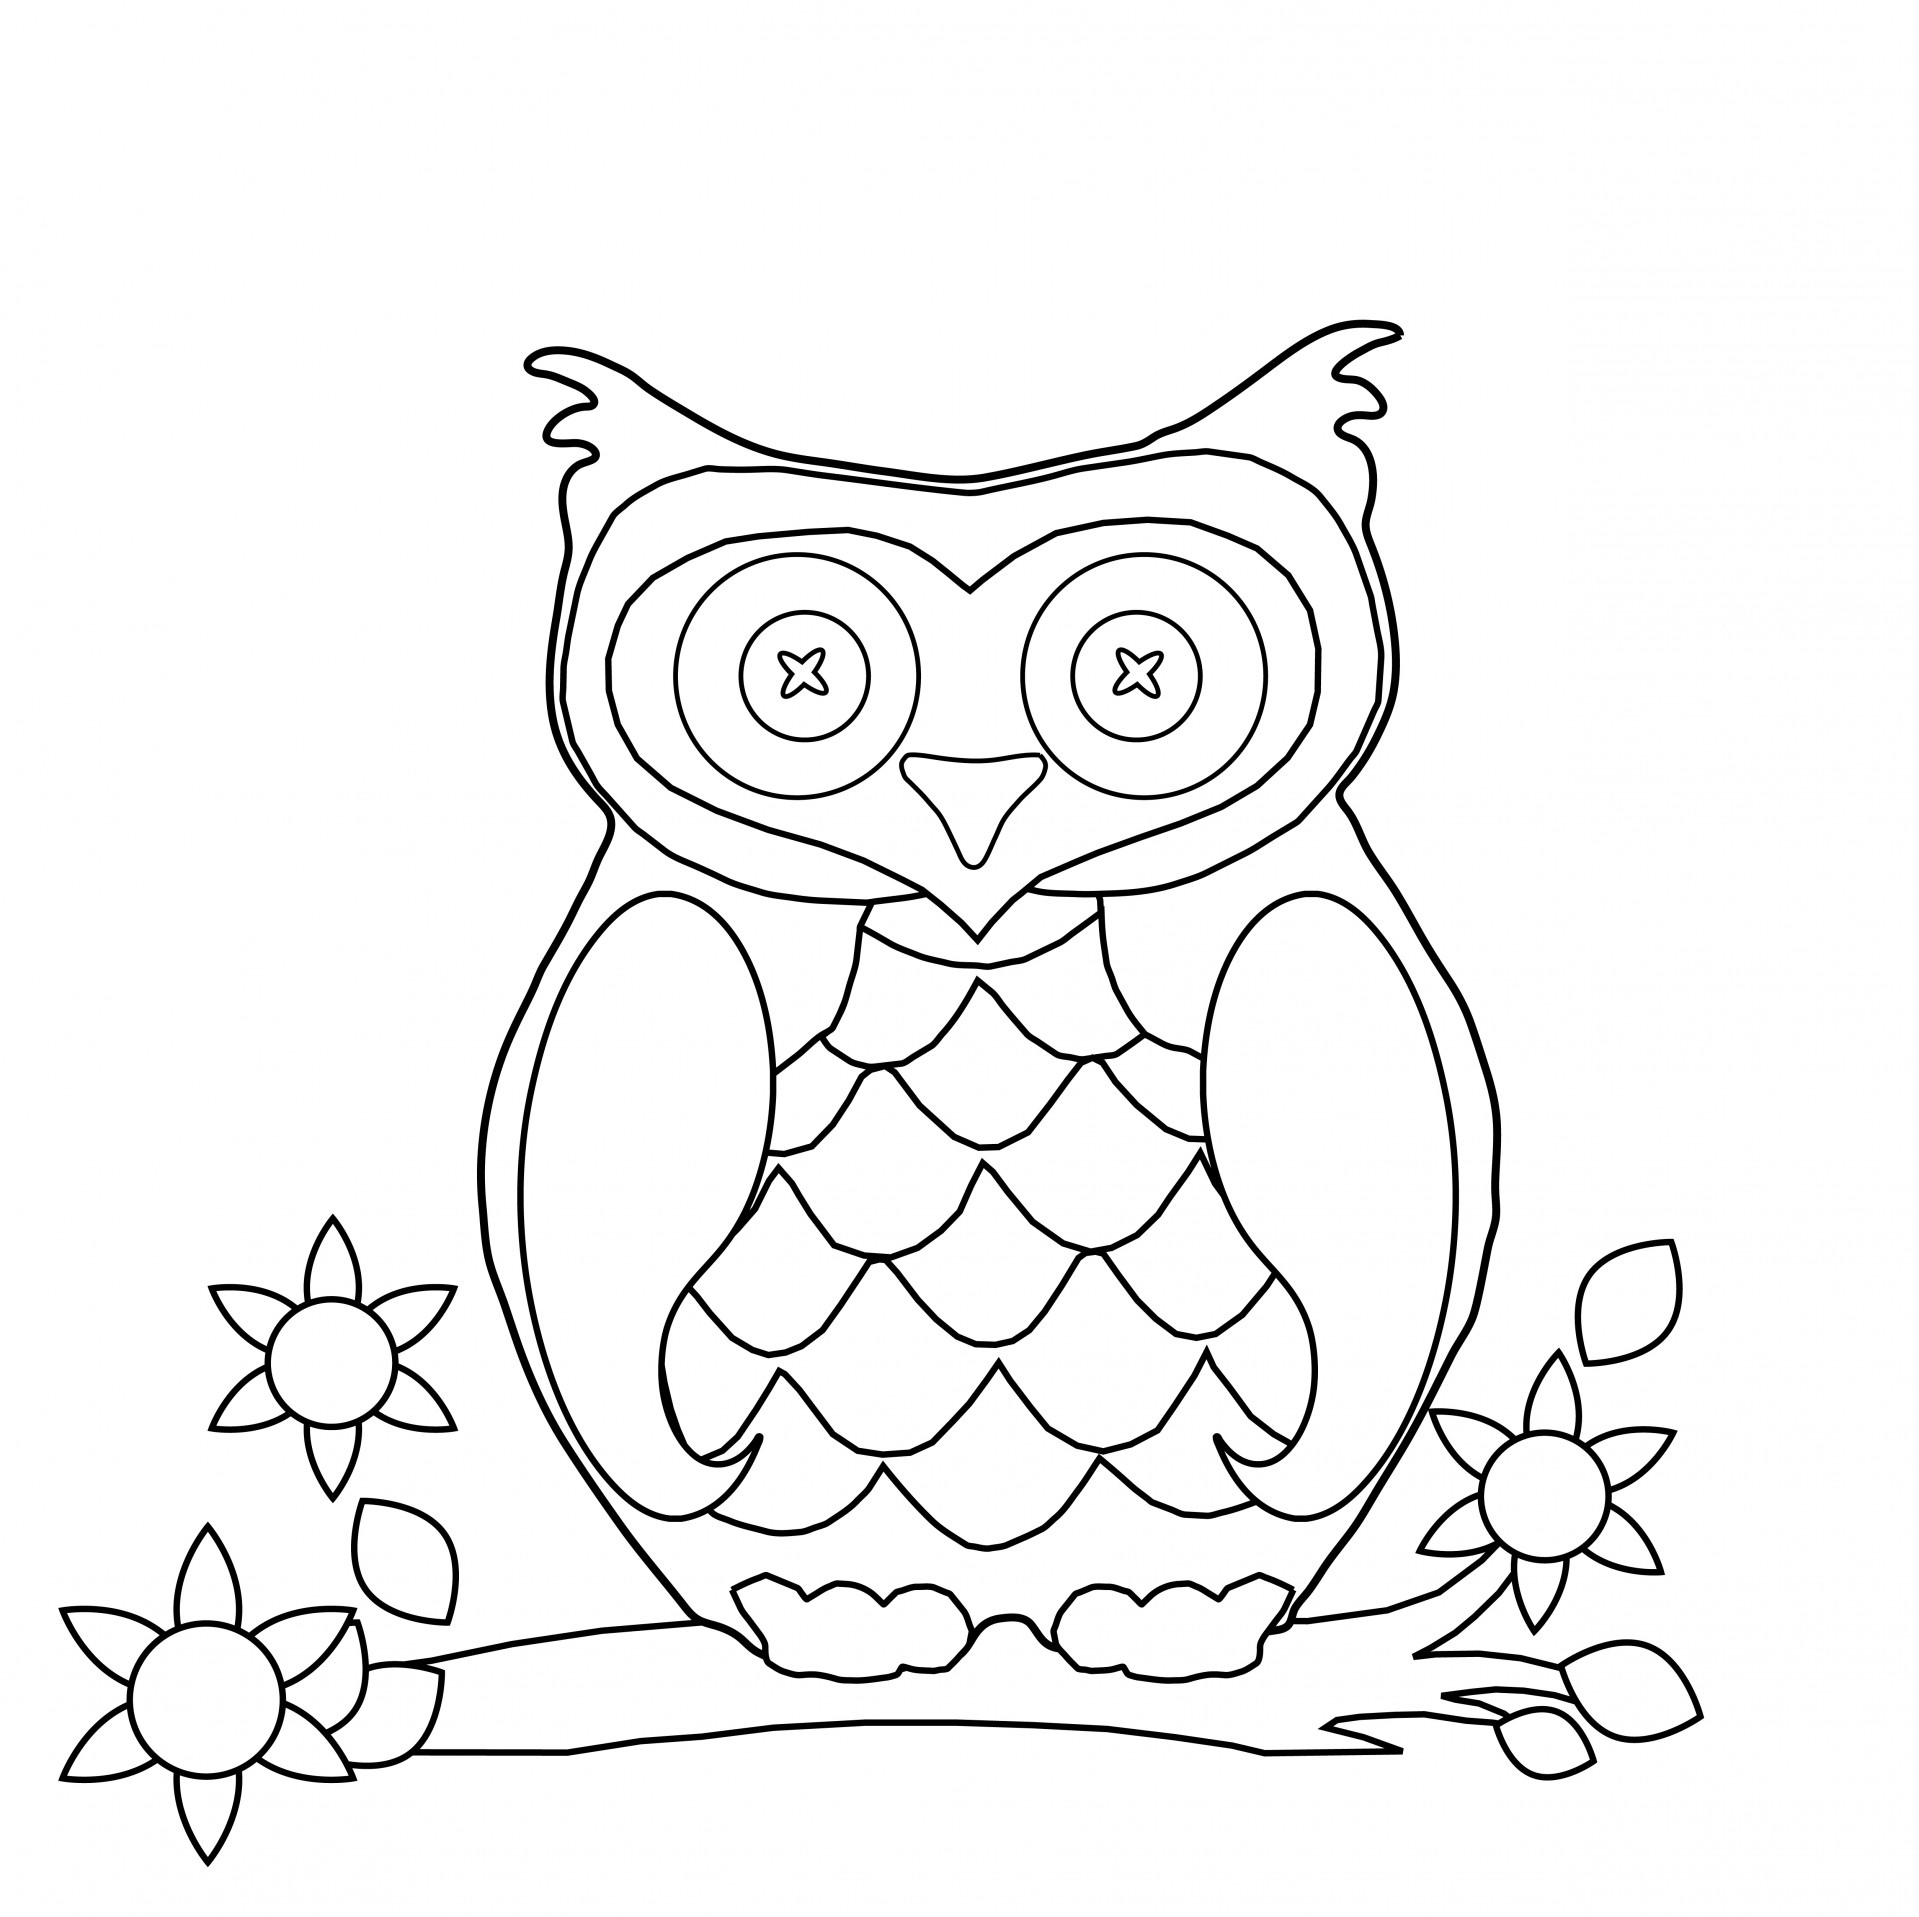 free printable coloring pages for adults free printable abstract coloring pages for adults pages free for coloring adults printable